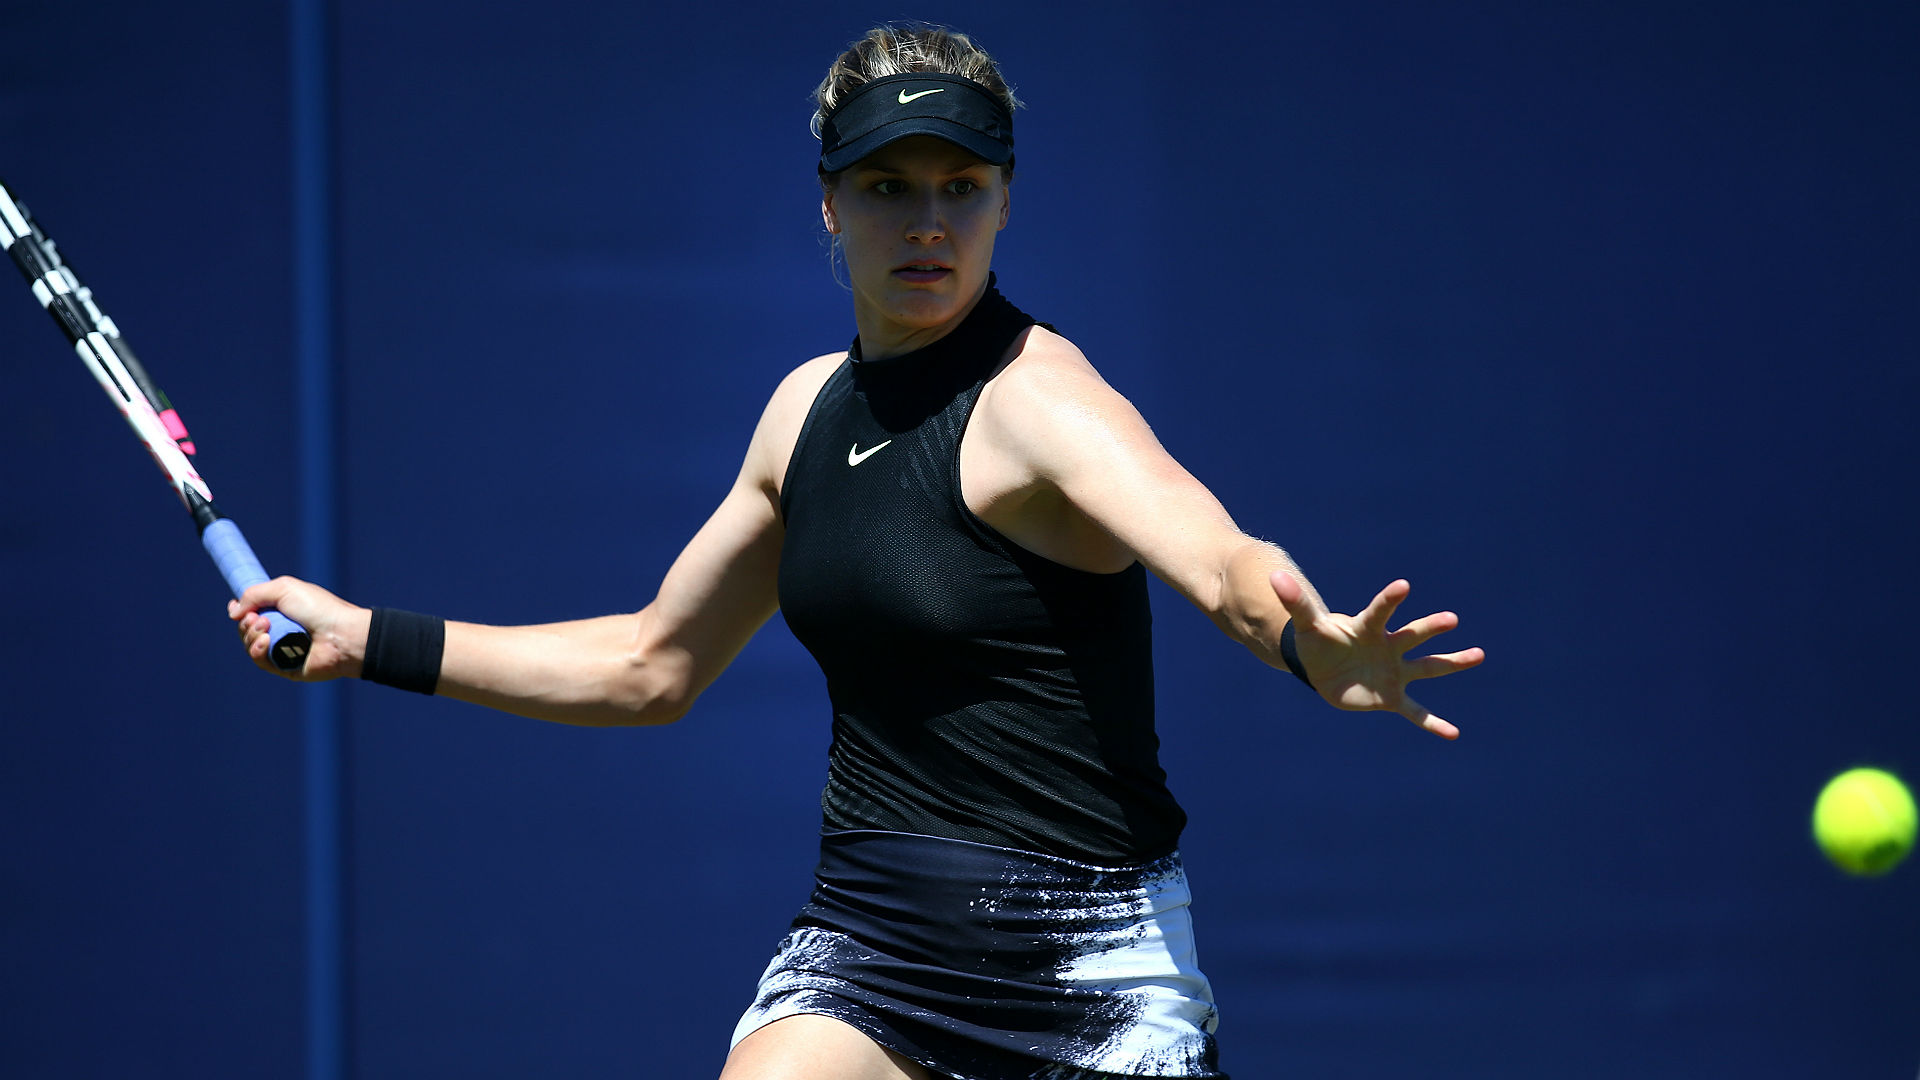 Eugenie Bouchard loses in straight sets in 1st round of Rogers Cup